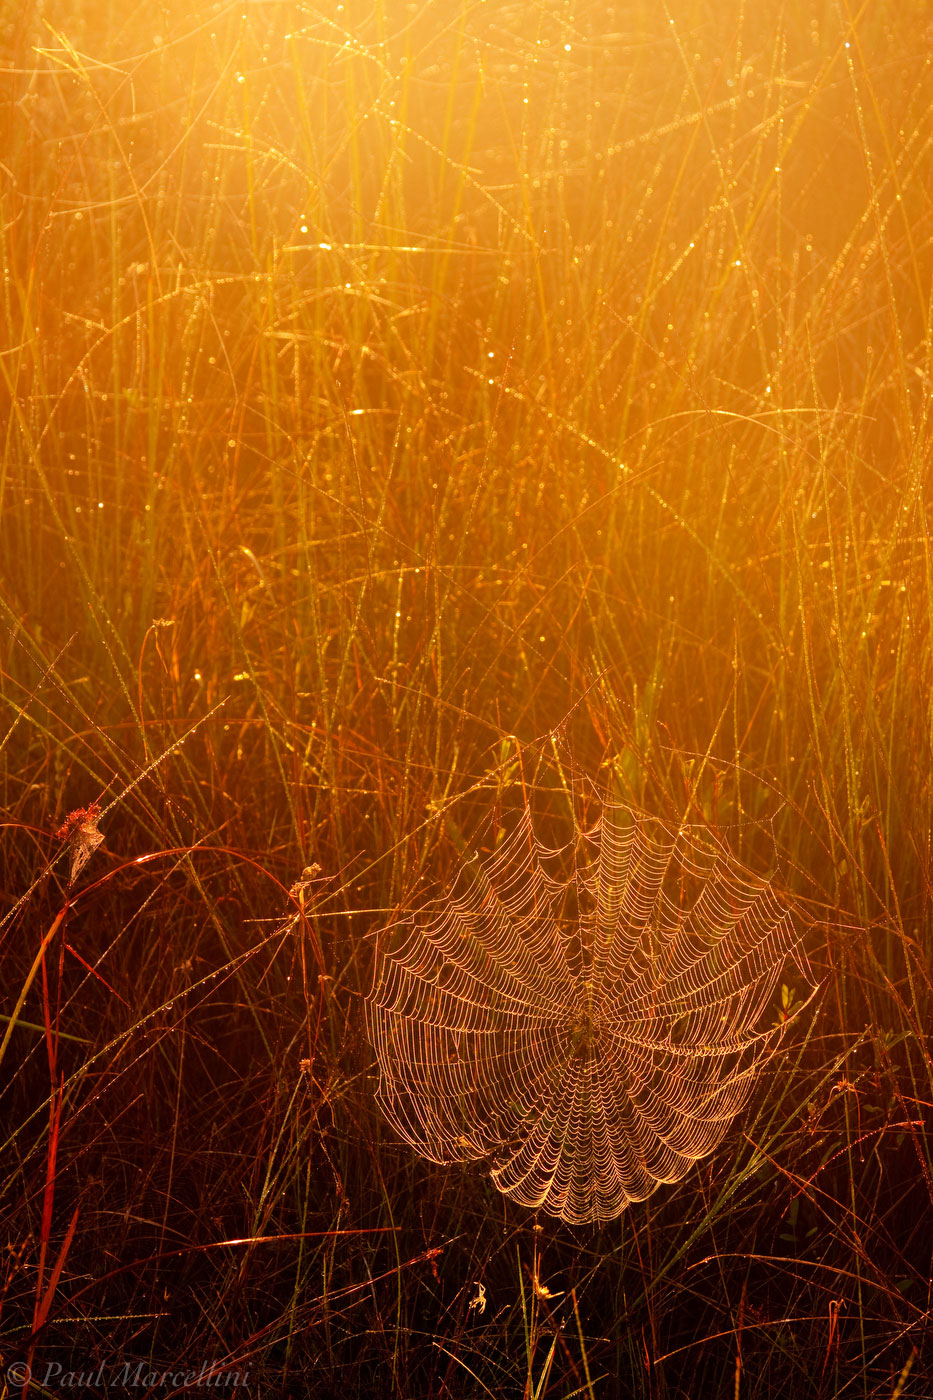 In the morning, the dew convered spiderwebs are everywhere. When the sun hits them just right, they sparkle like jewels.